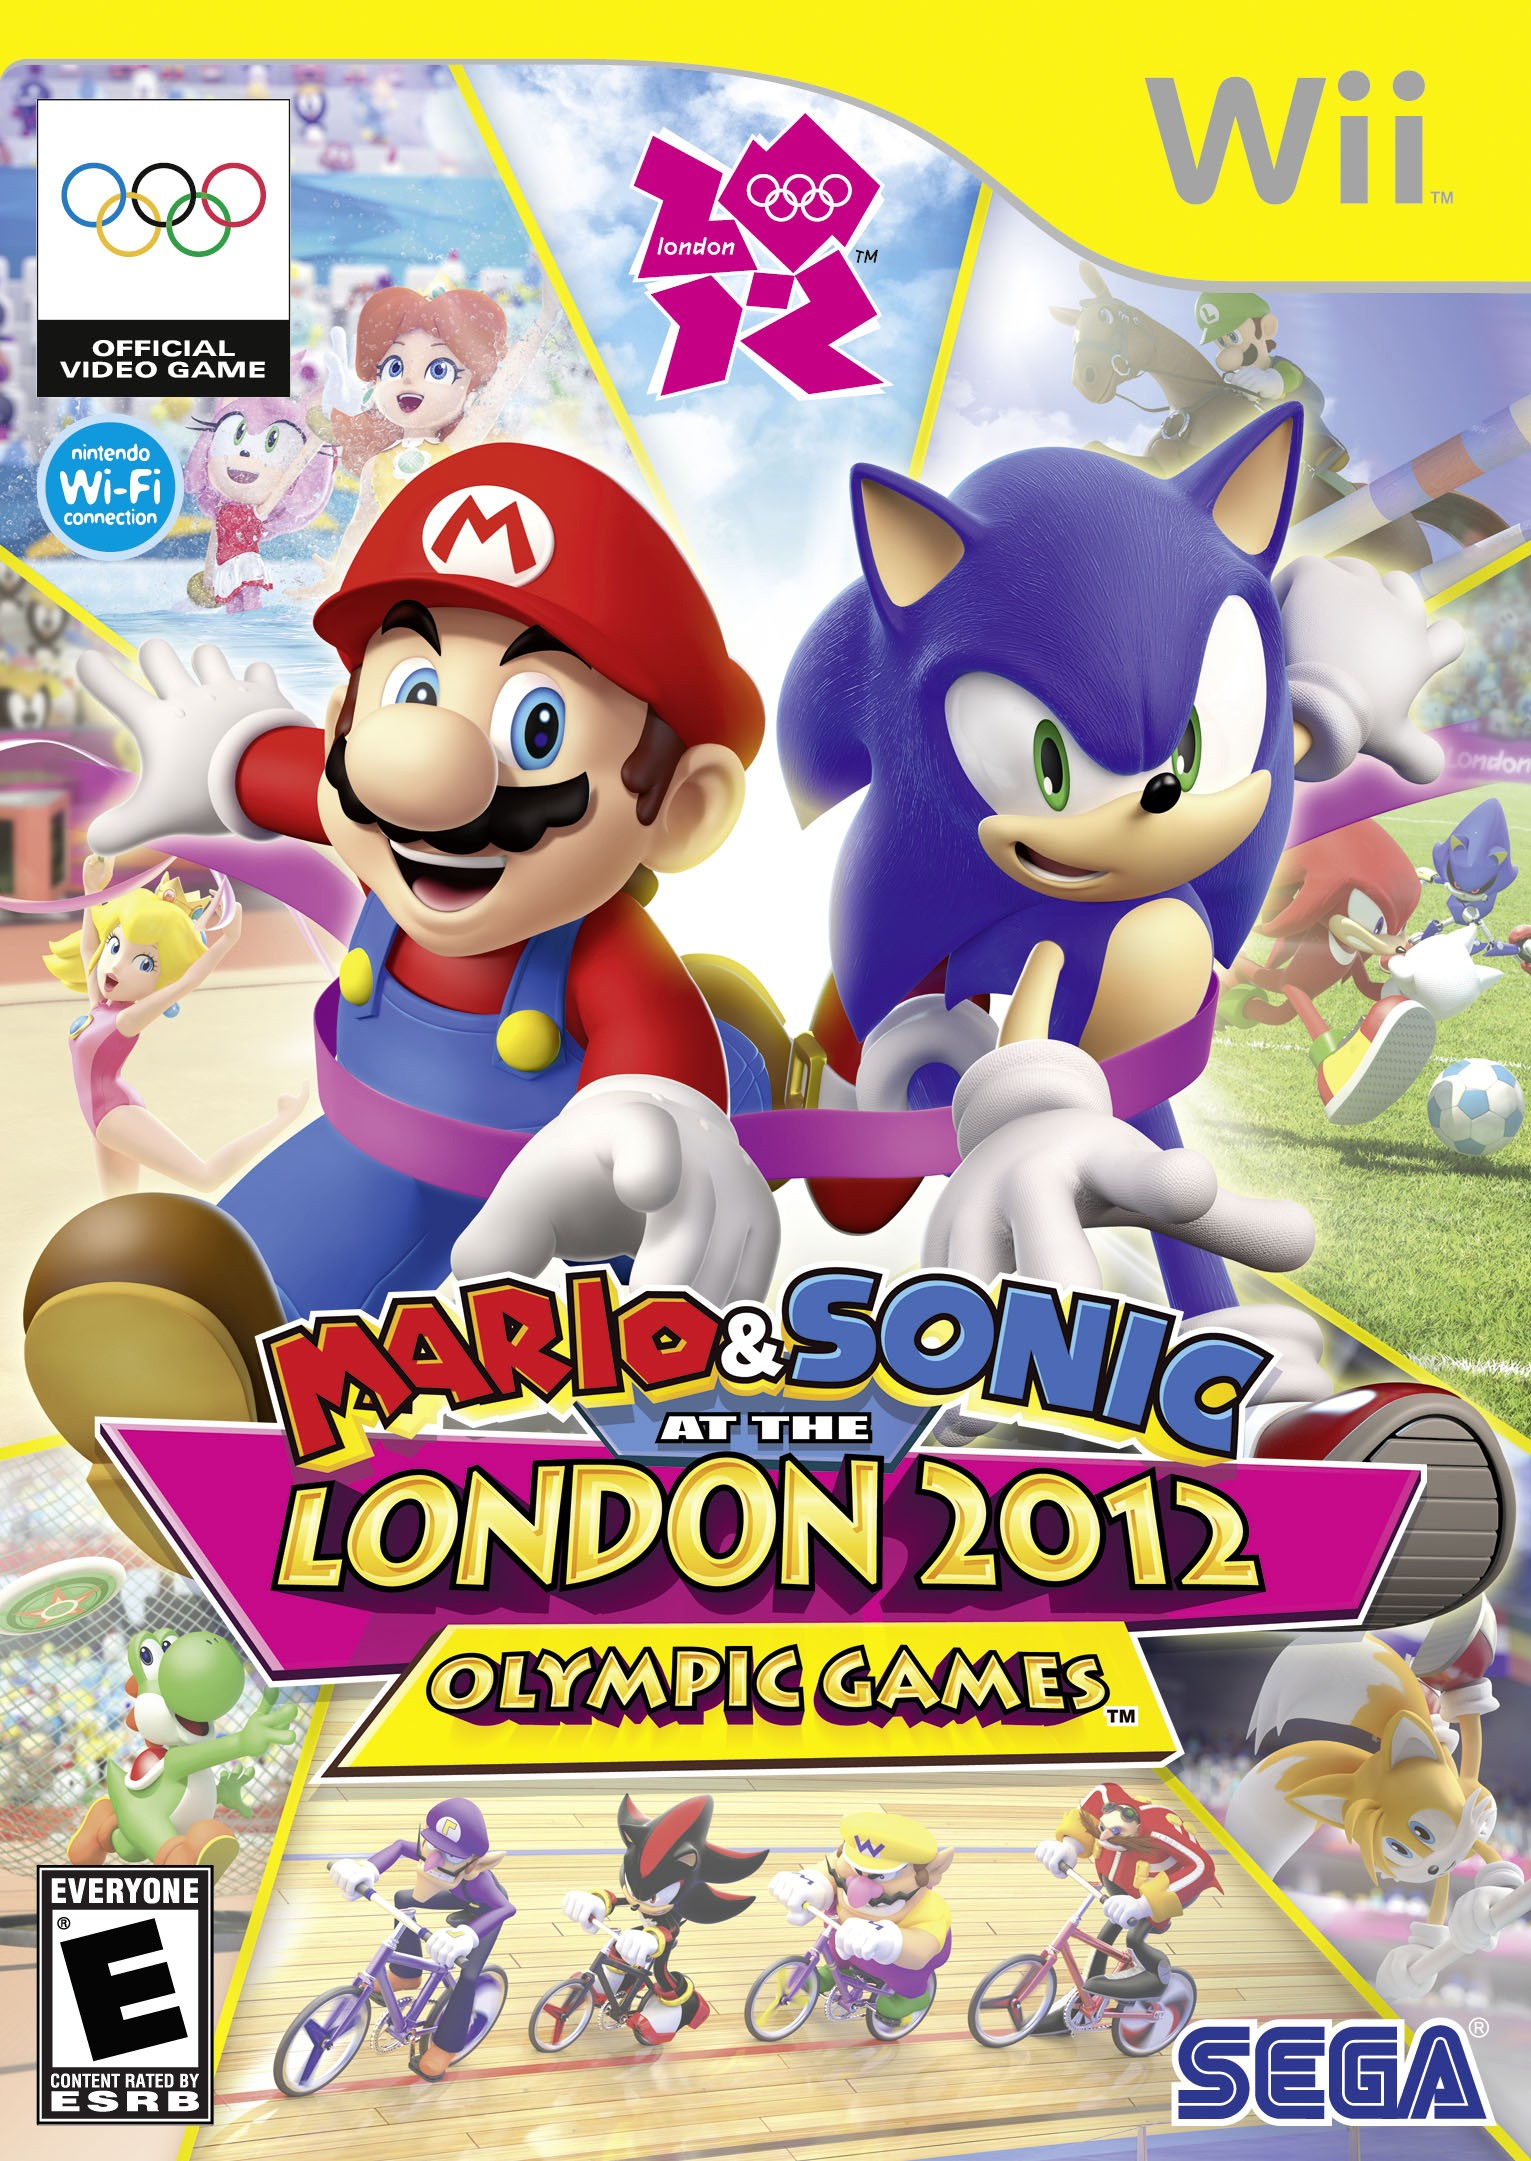 Mario and Sonic at London 2012 Olympic Games 马里奥和索尼克在伦敦奥运会